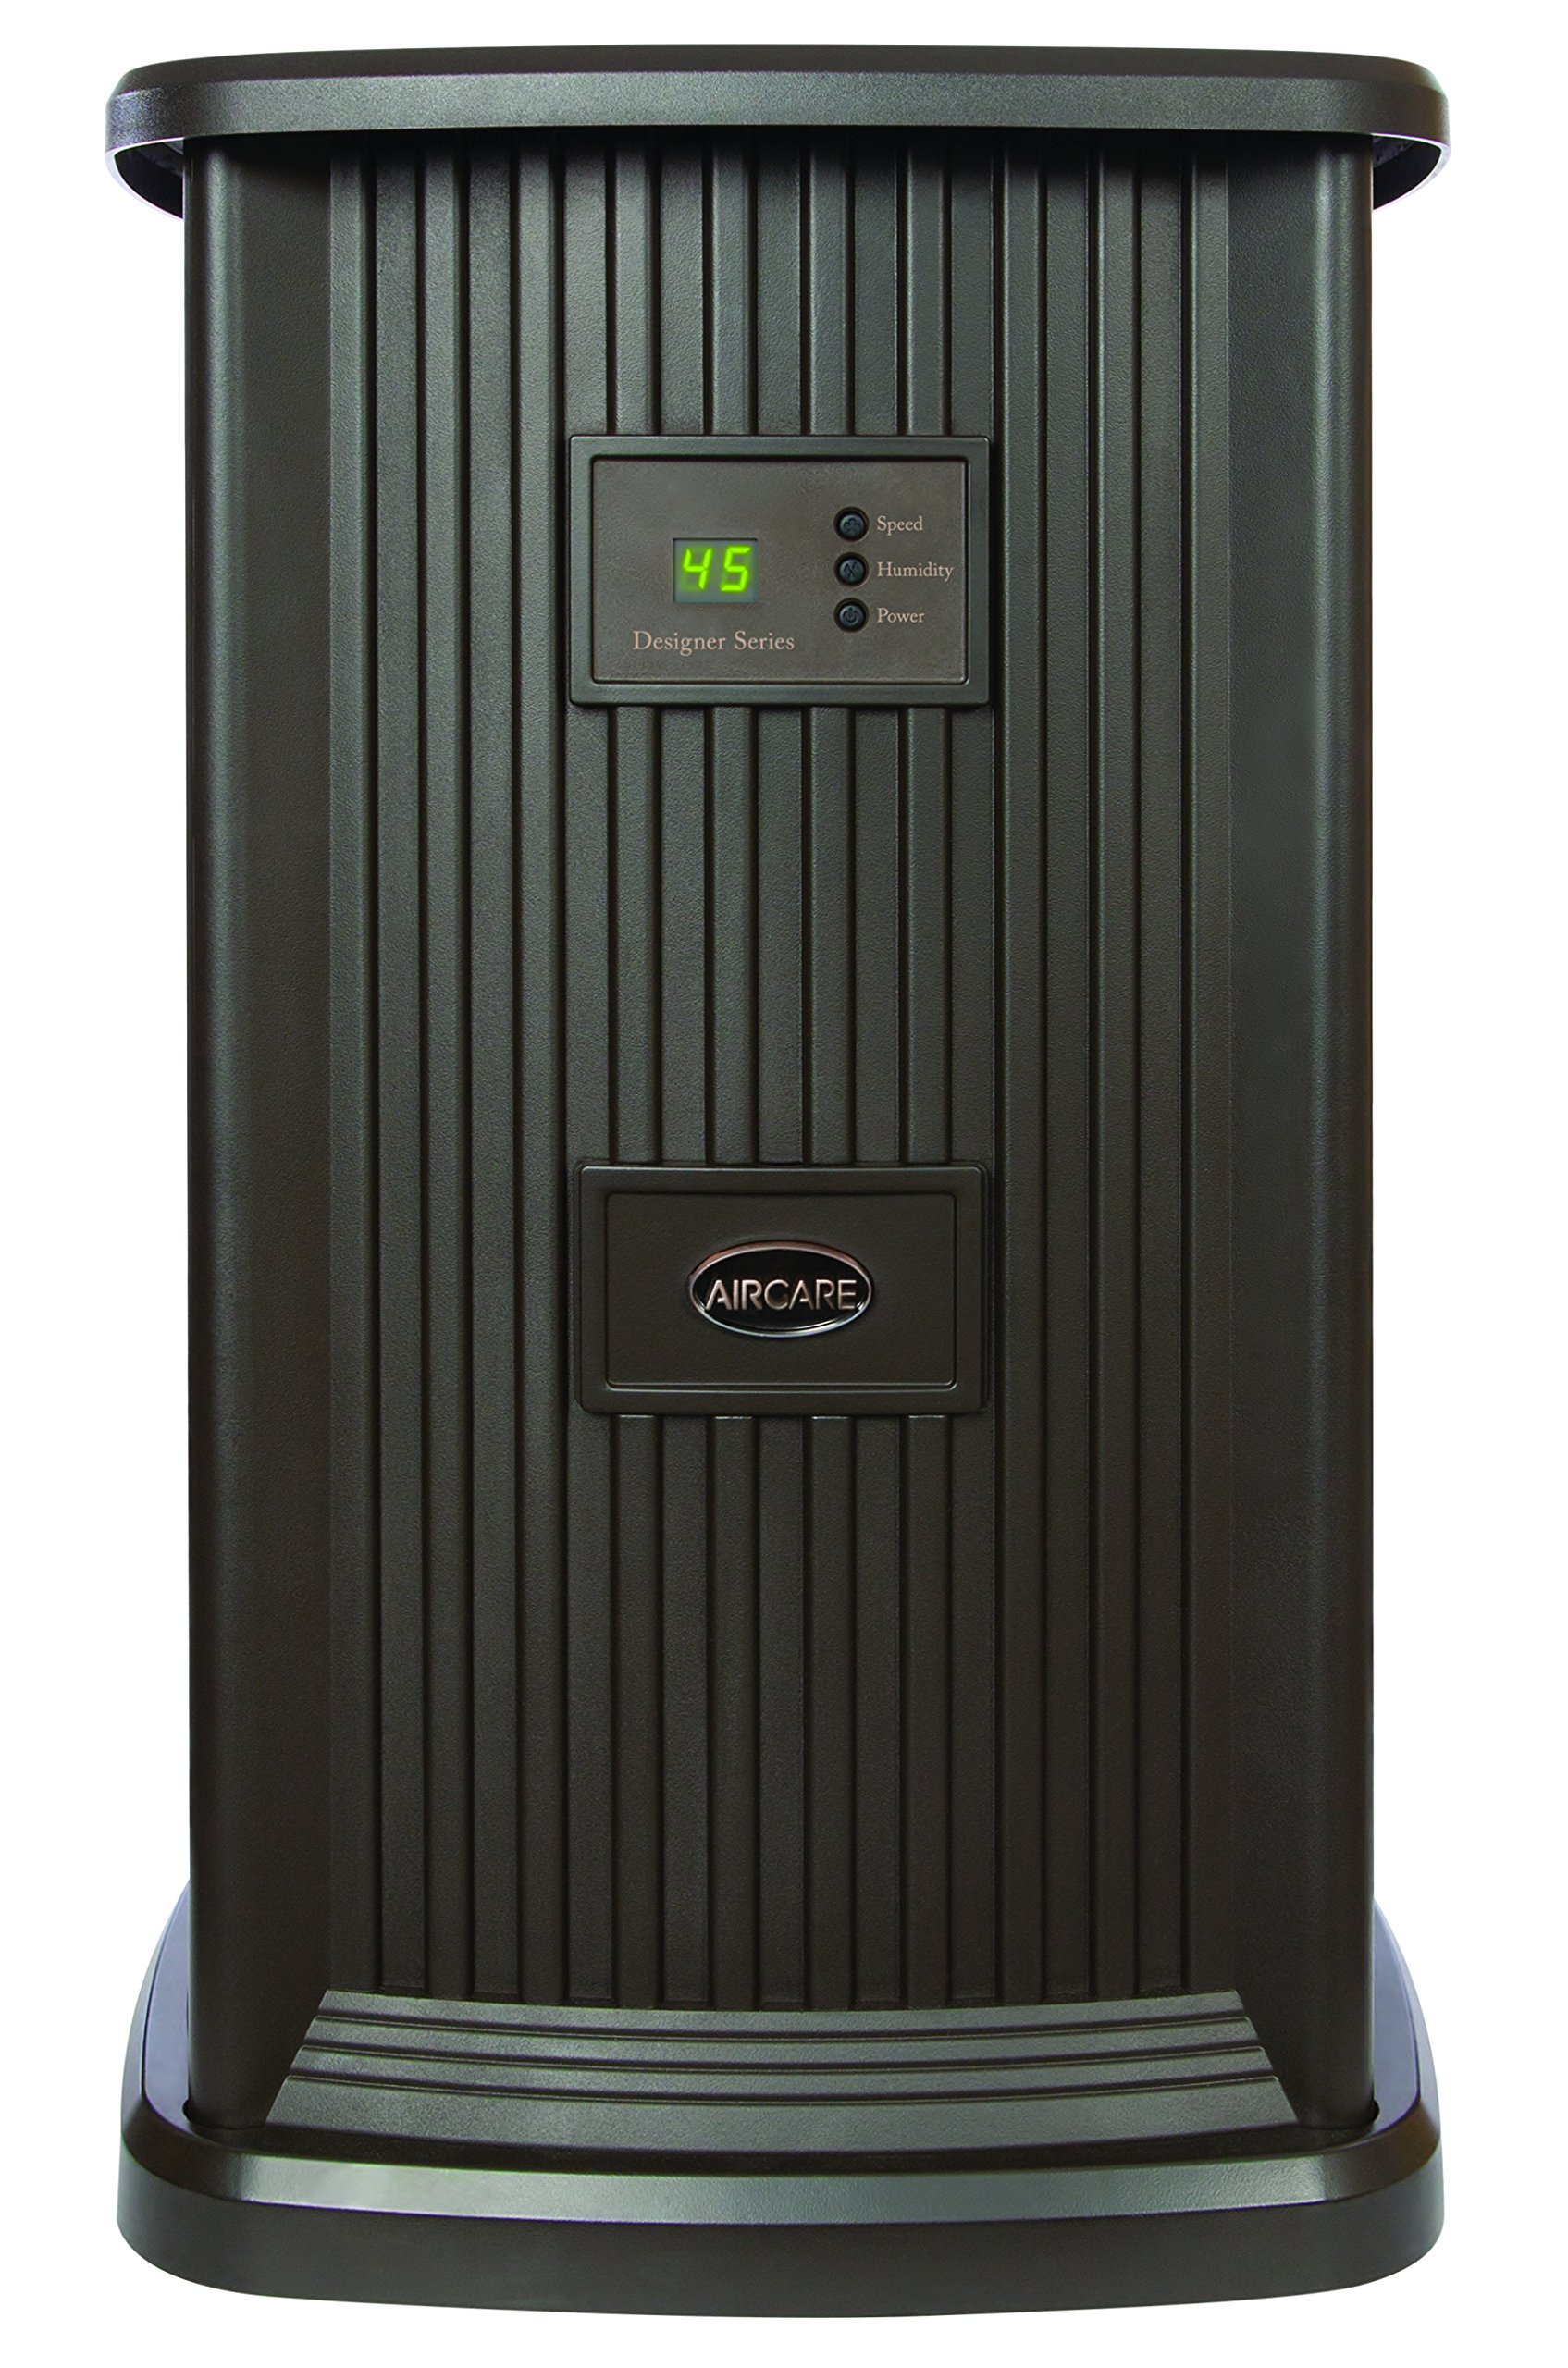 AIRCARE EP9 800 Digital Whole-House Pedestal-Style Evaporative Humidifier, Espresso by Essick Air (Image #6)